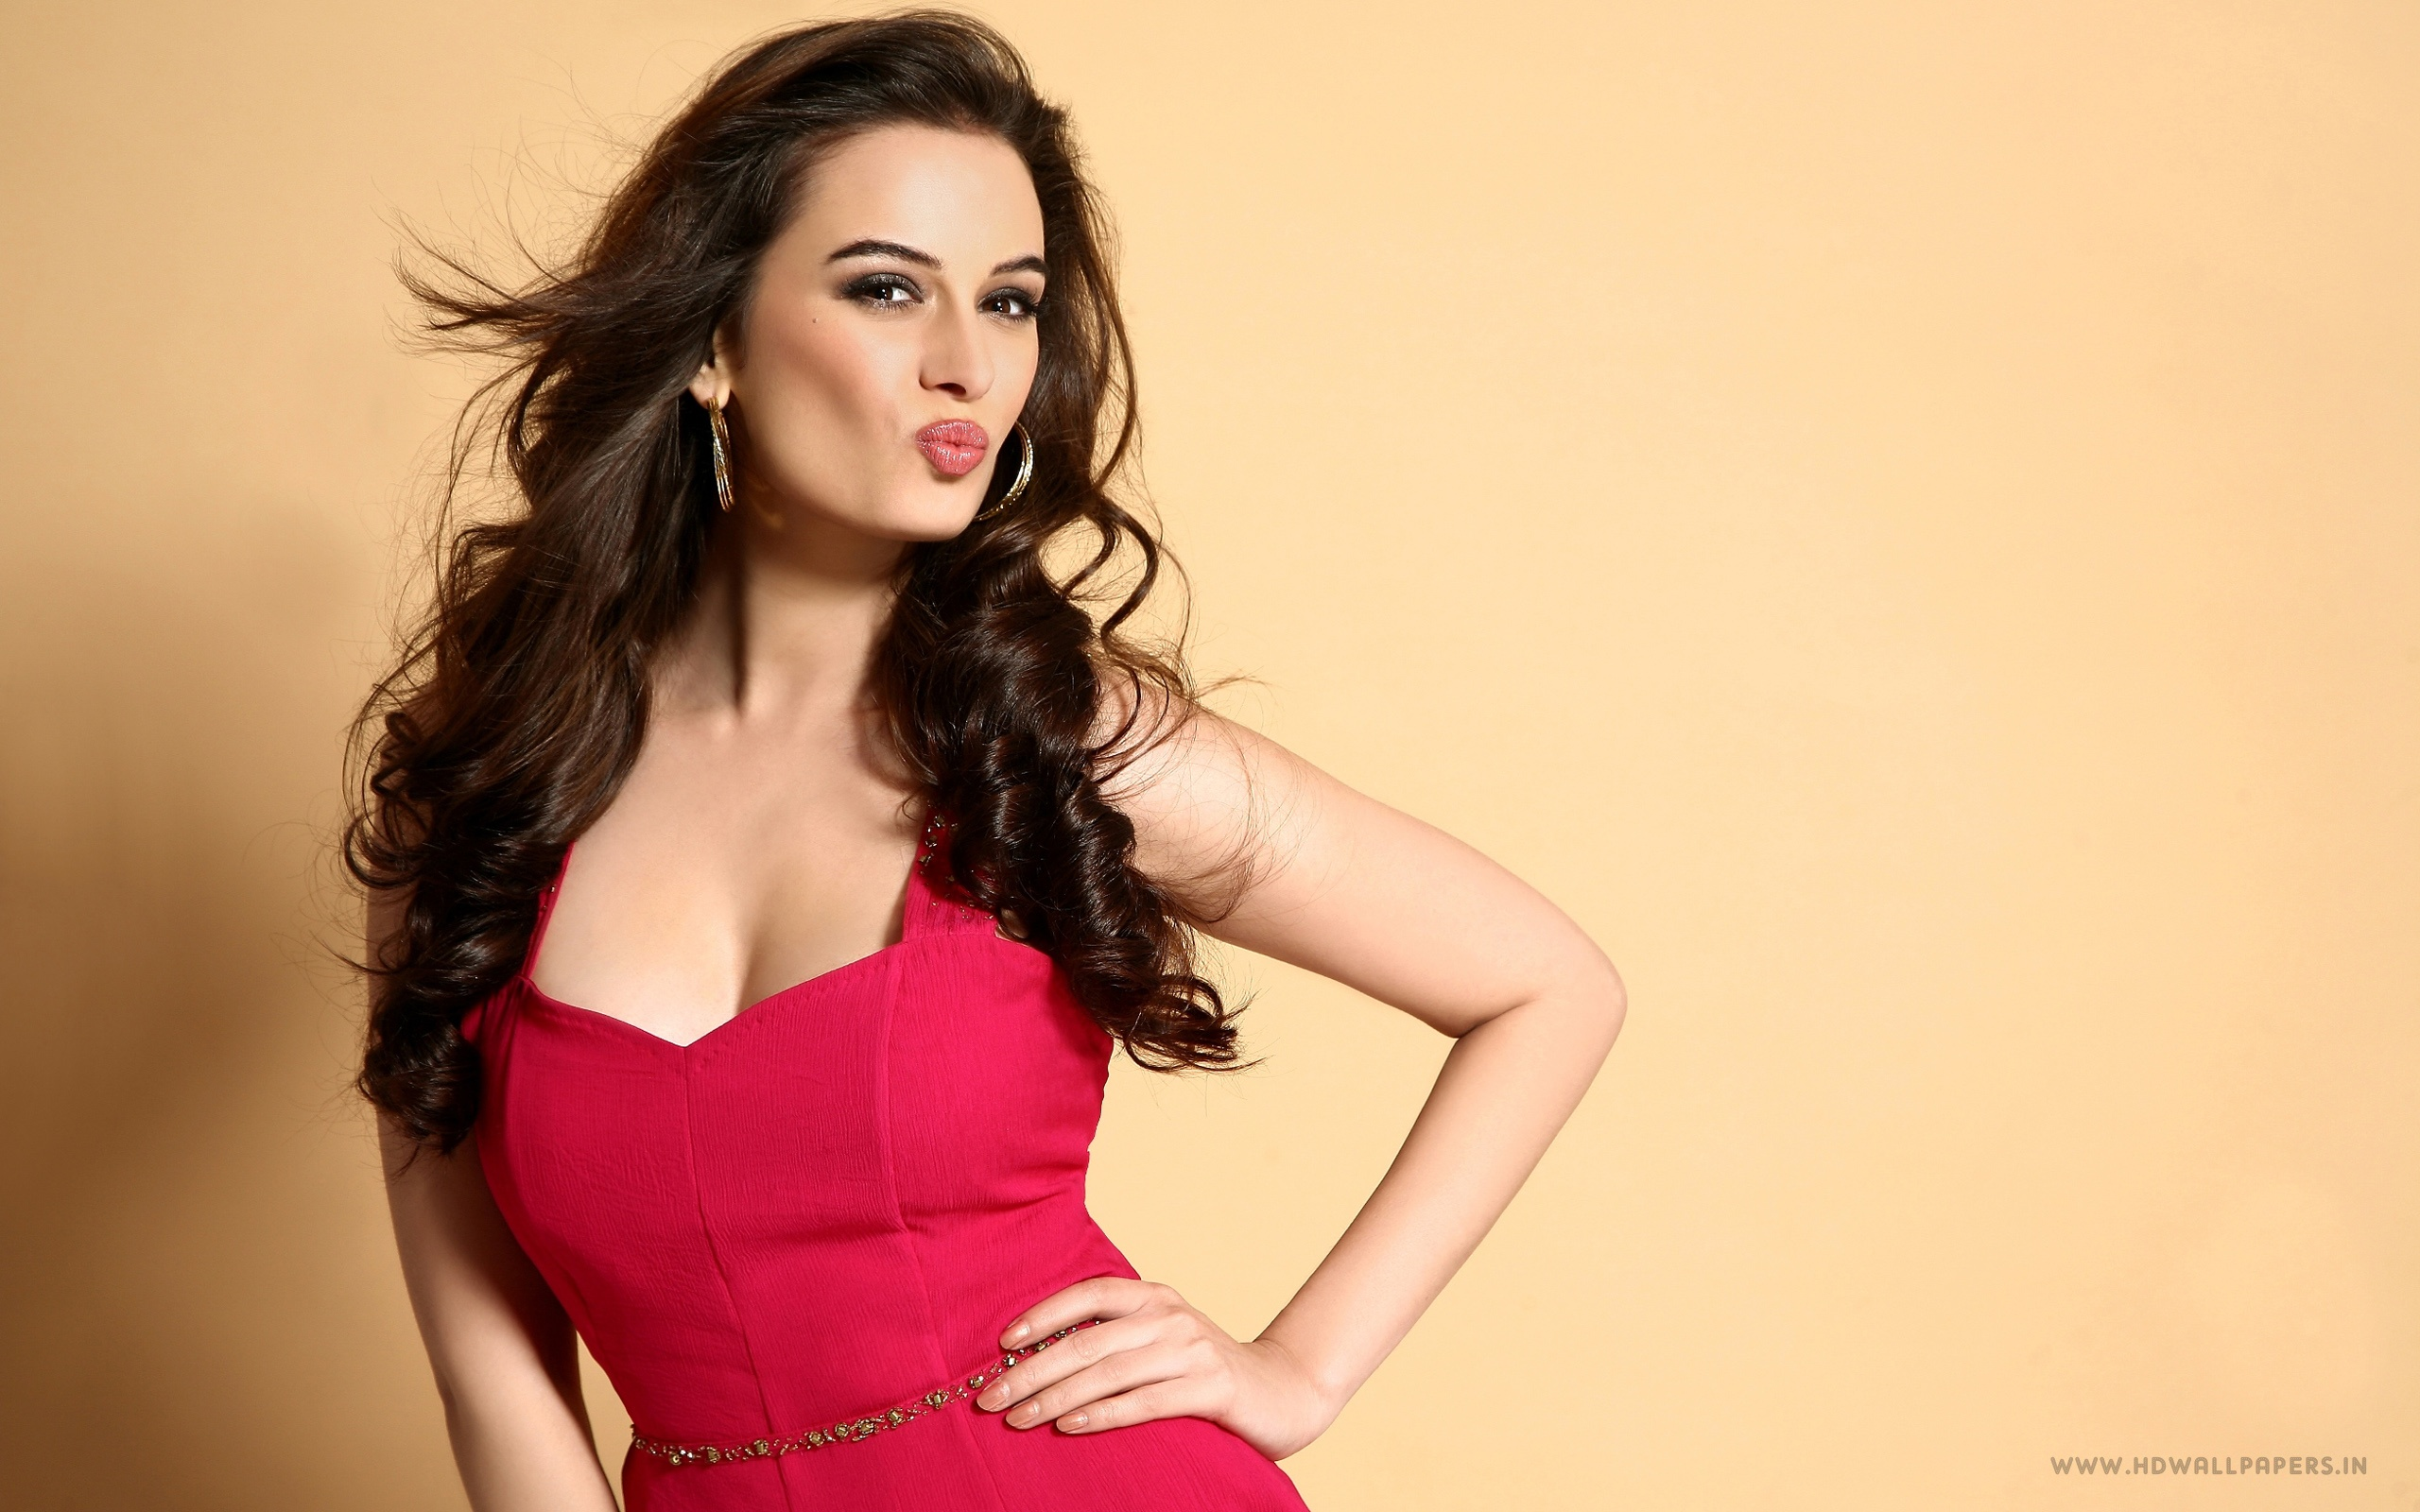 evelyn sharma bollywood actress wallpapers in jpg format for free